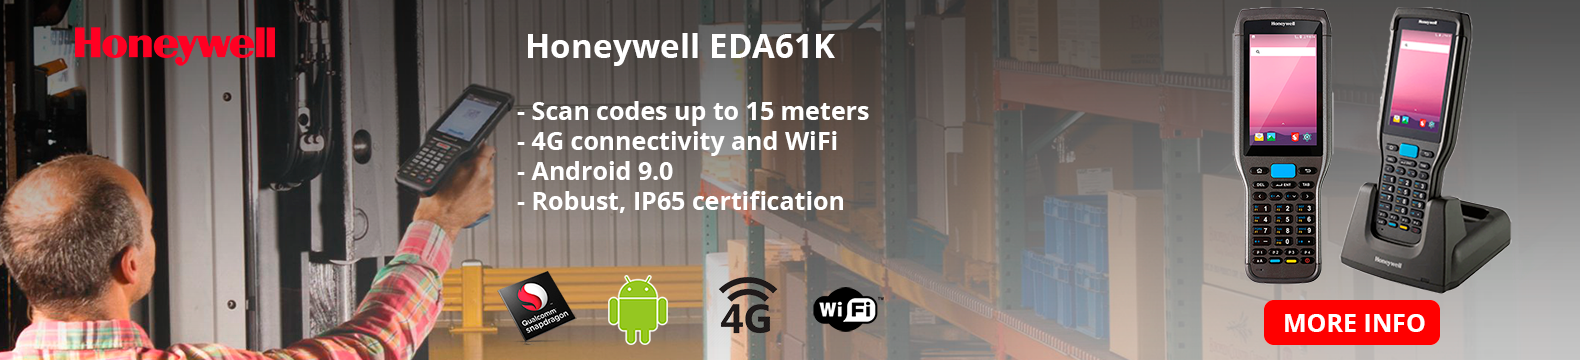 Meet the EDA61K terminal, Honeywell's new feature